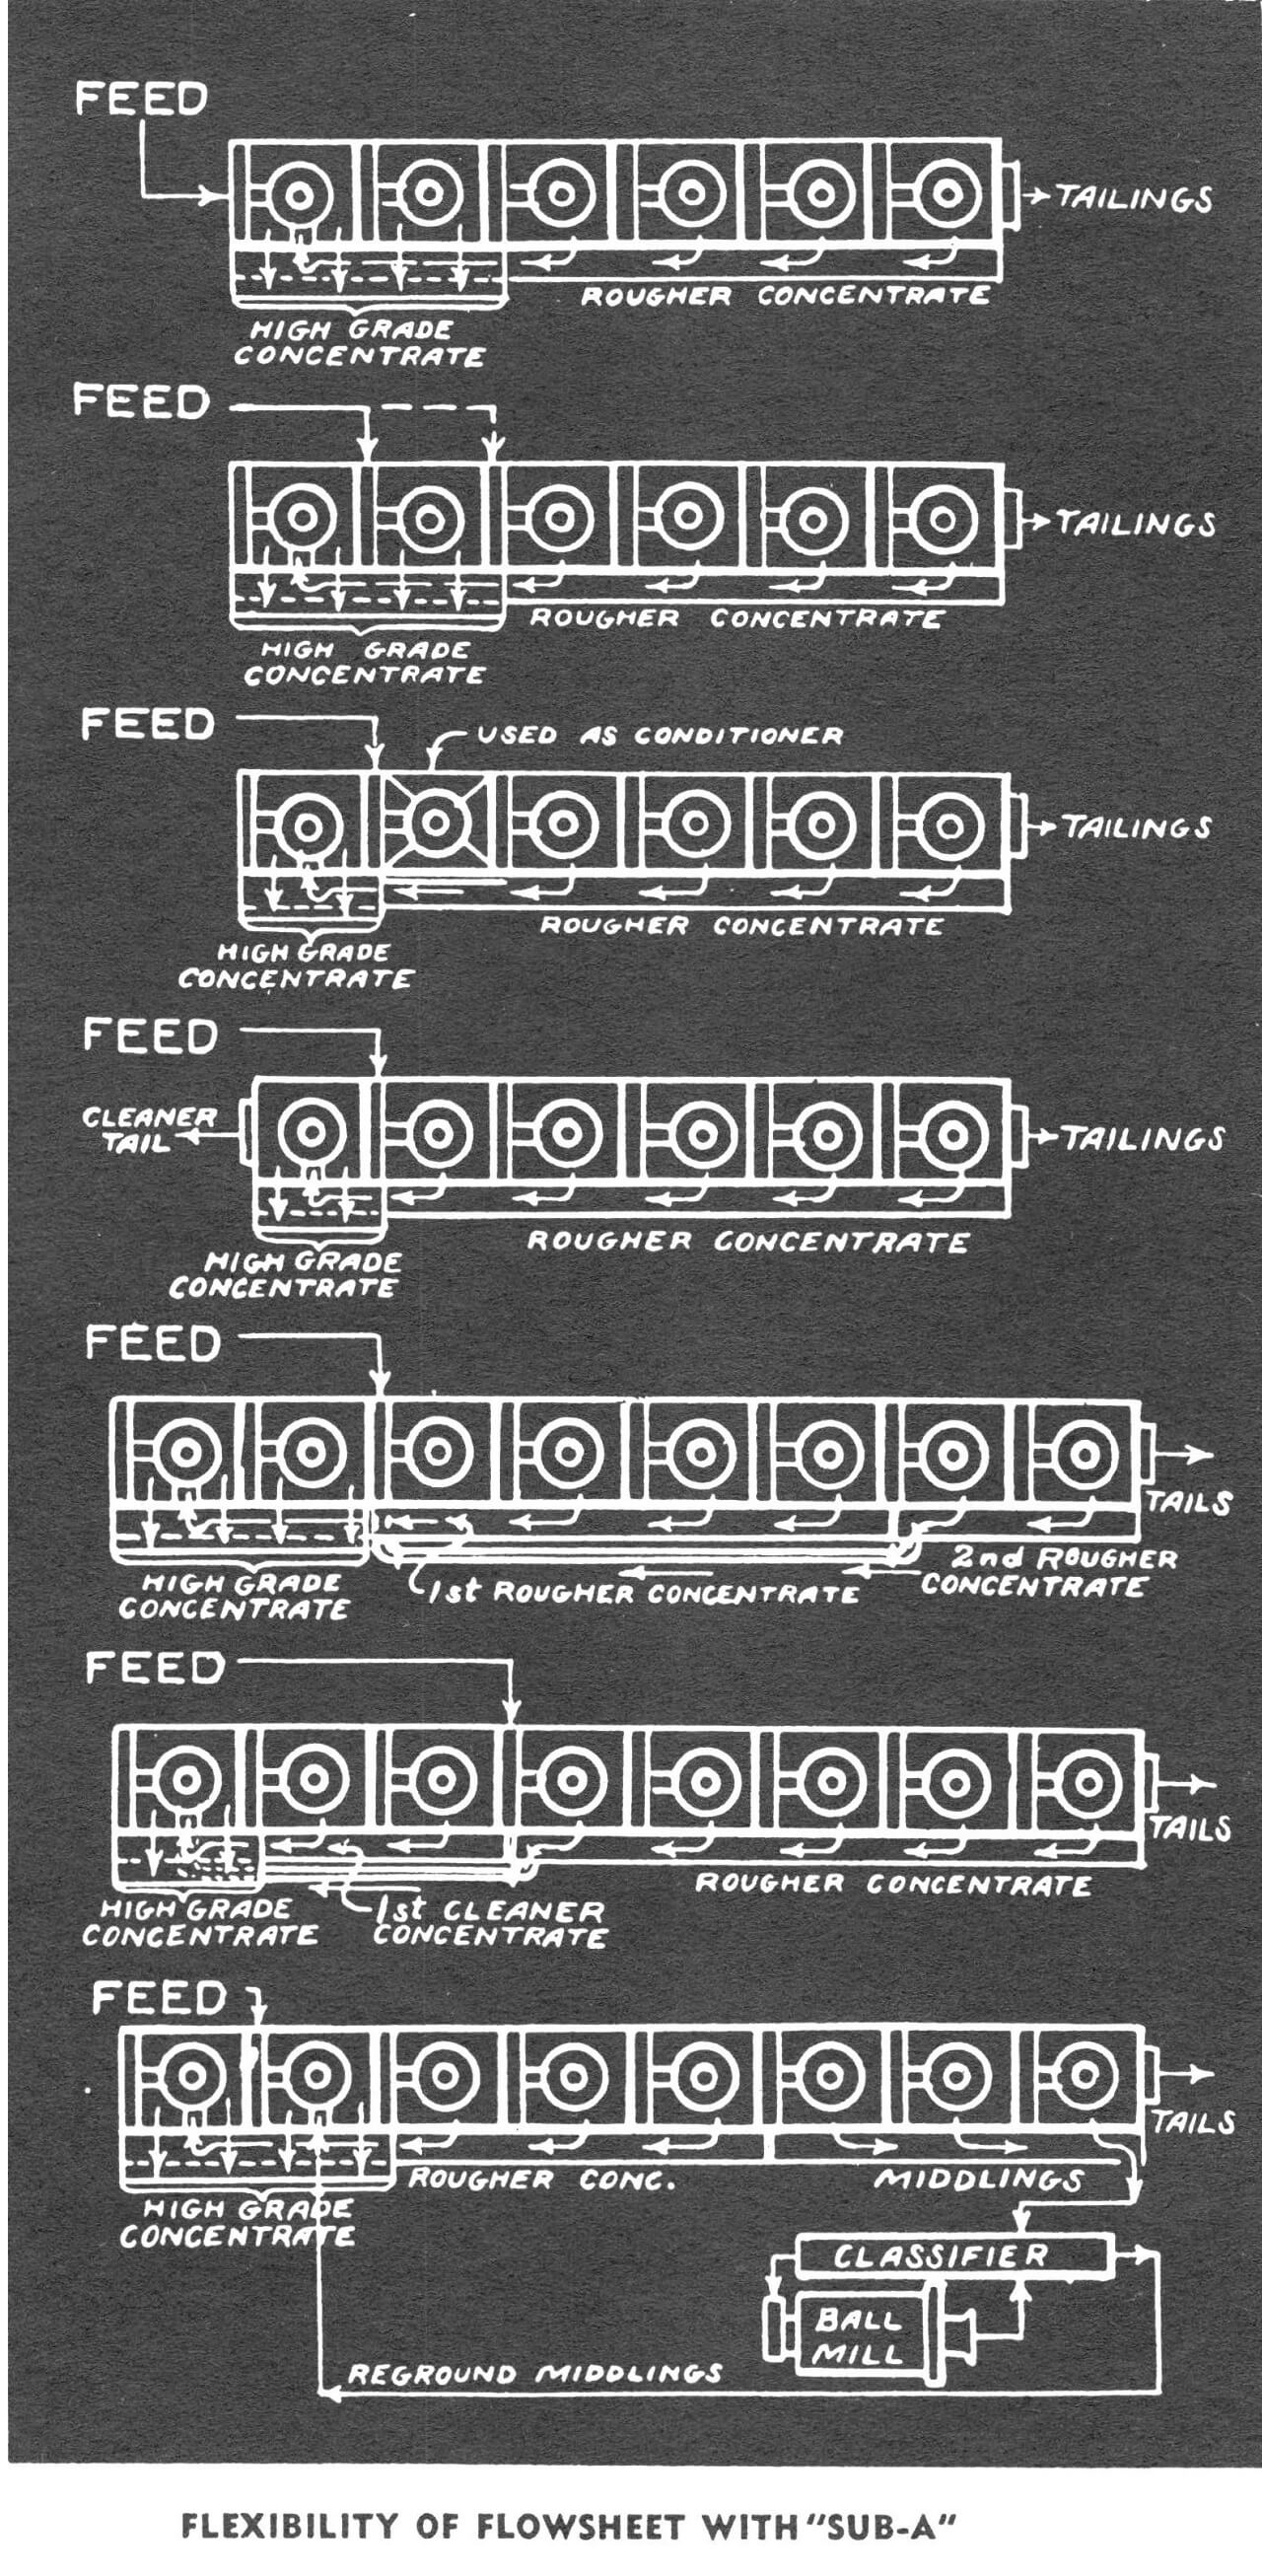 Possible Flotation Circuit Configurations with Float Machines SUB-A